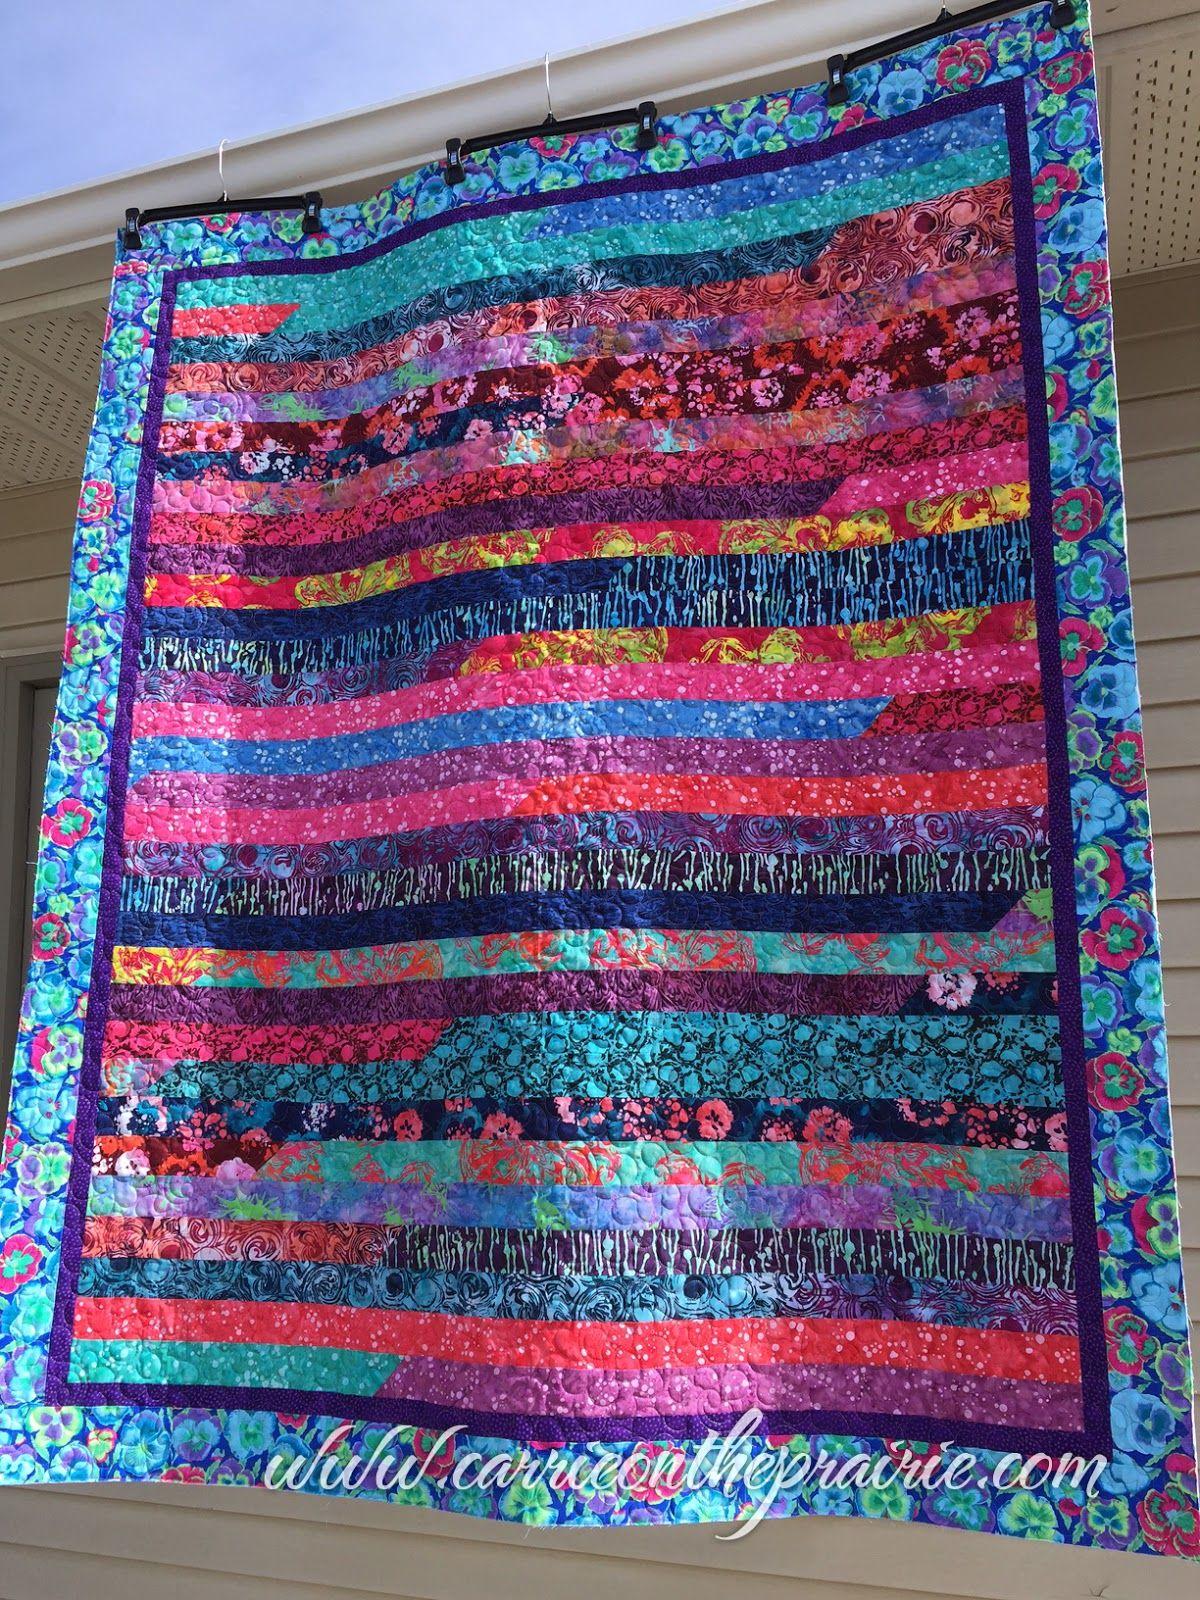 Strip Quilt With Edge To Edge Quilting By Carrie On The